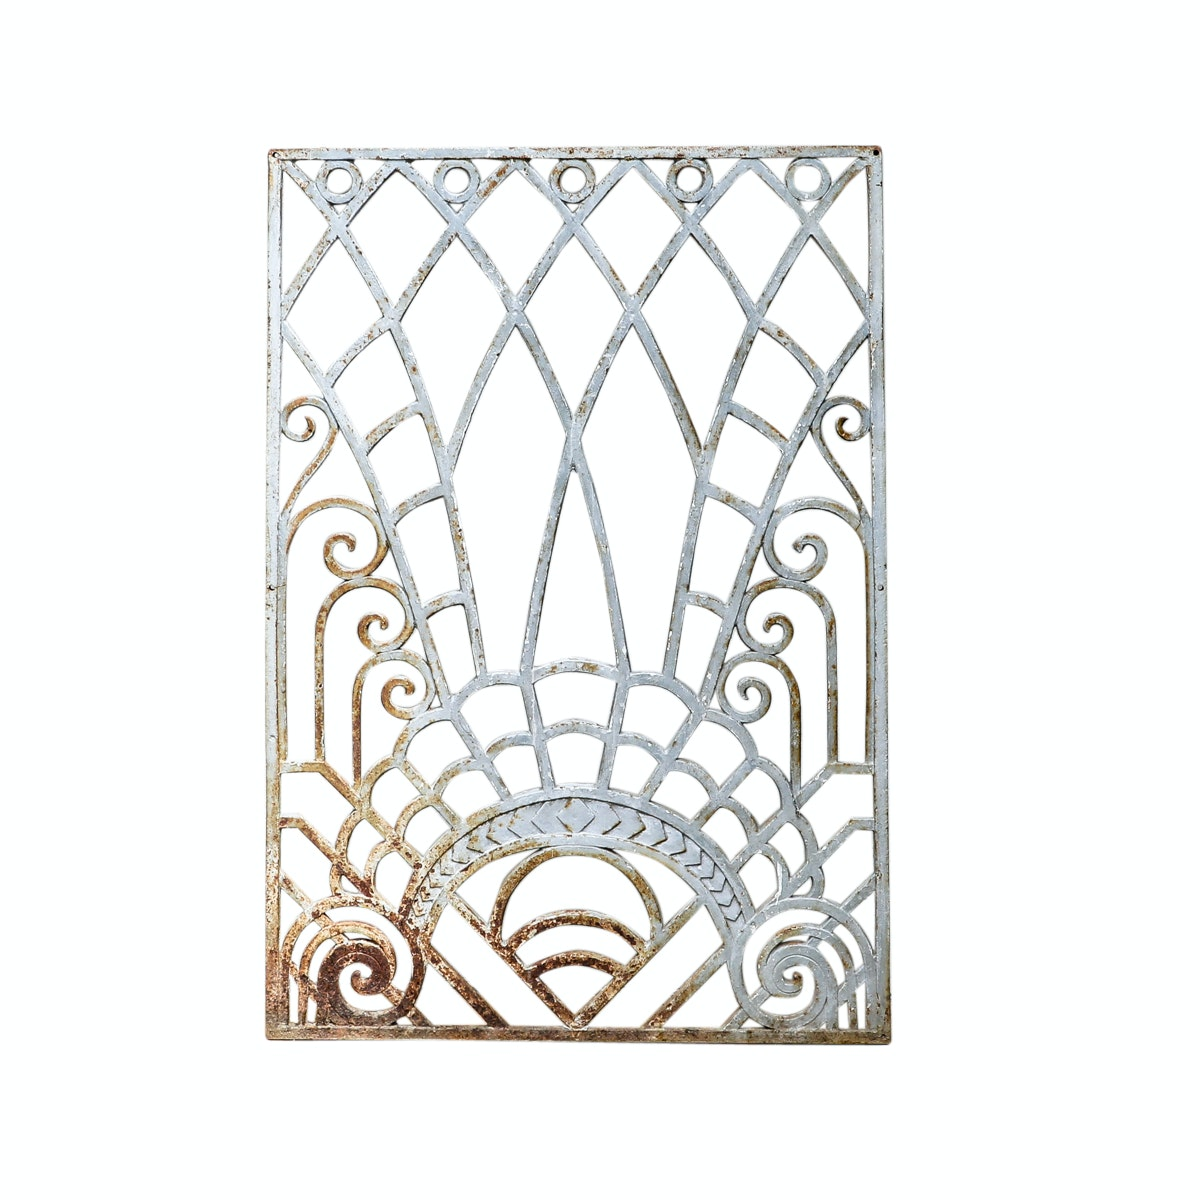 Art Deco Silver Painted Cast Iron Window Grate